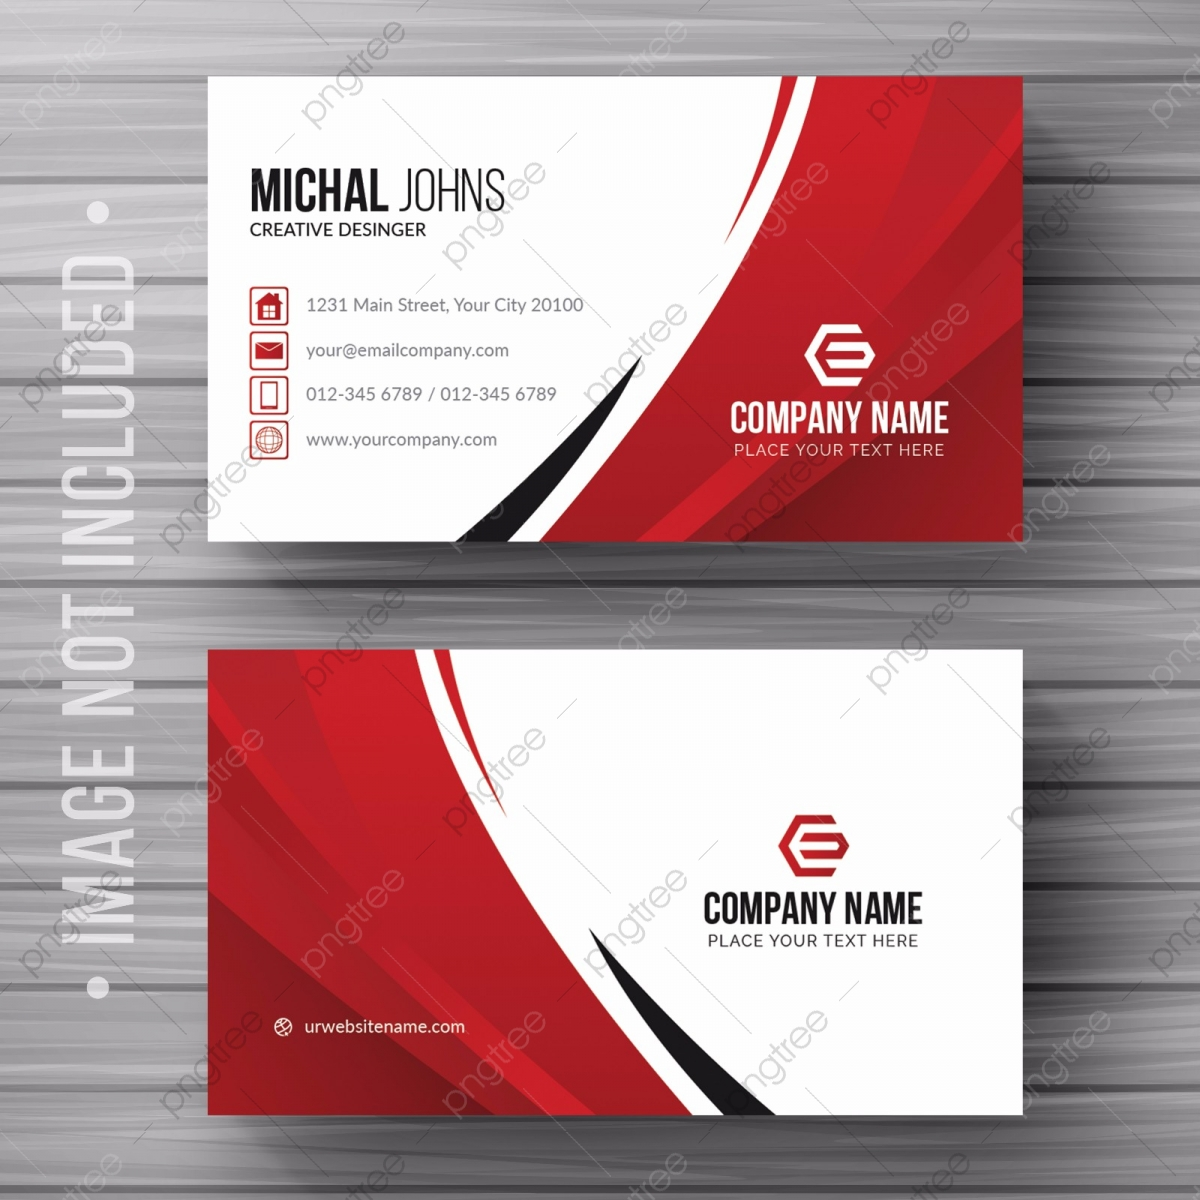 White Business Card With Details Template For Free Download On Pngtree